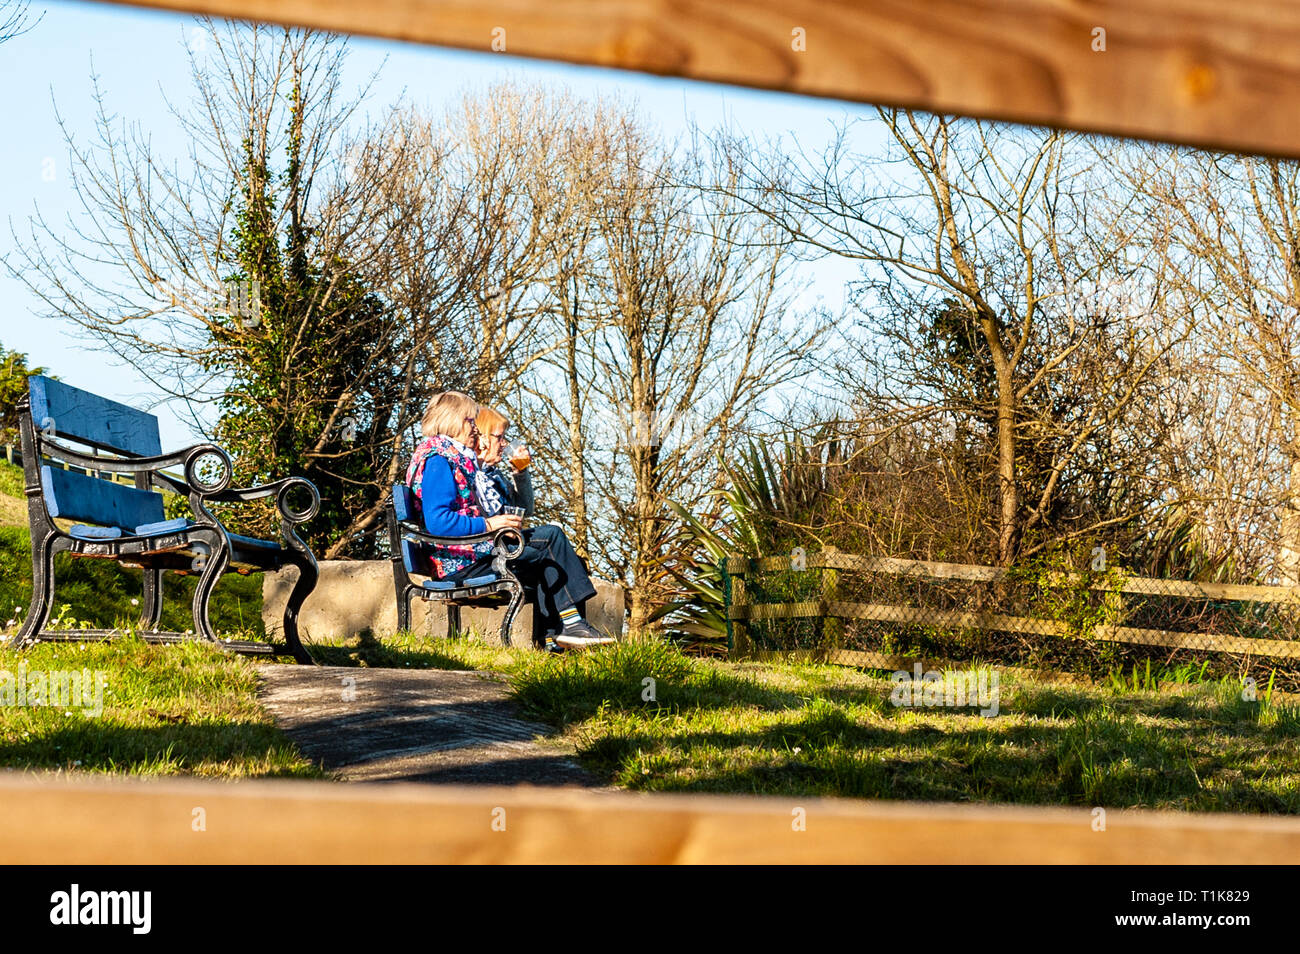 Schull, West Cork, Ireland. 27th March, 2019. Two ladies enjoy the view of Schull Harbour at the end of a beautiful day in West Cork. The remainder of the day will be sunny with highs of 12° Celsius. Credit: Andy Gibson/Alamy Live News. - Stock Image